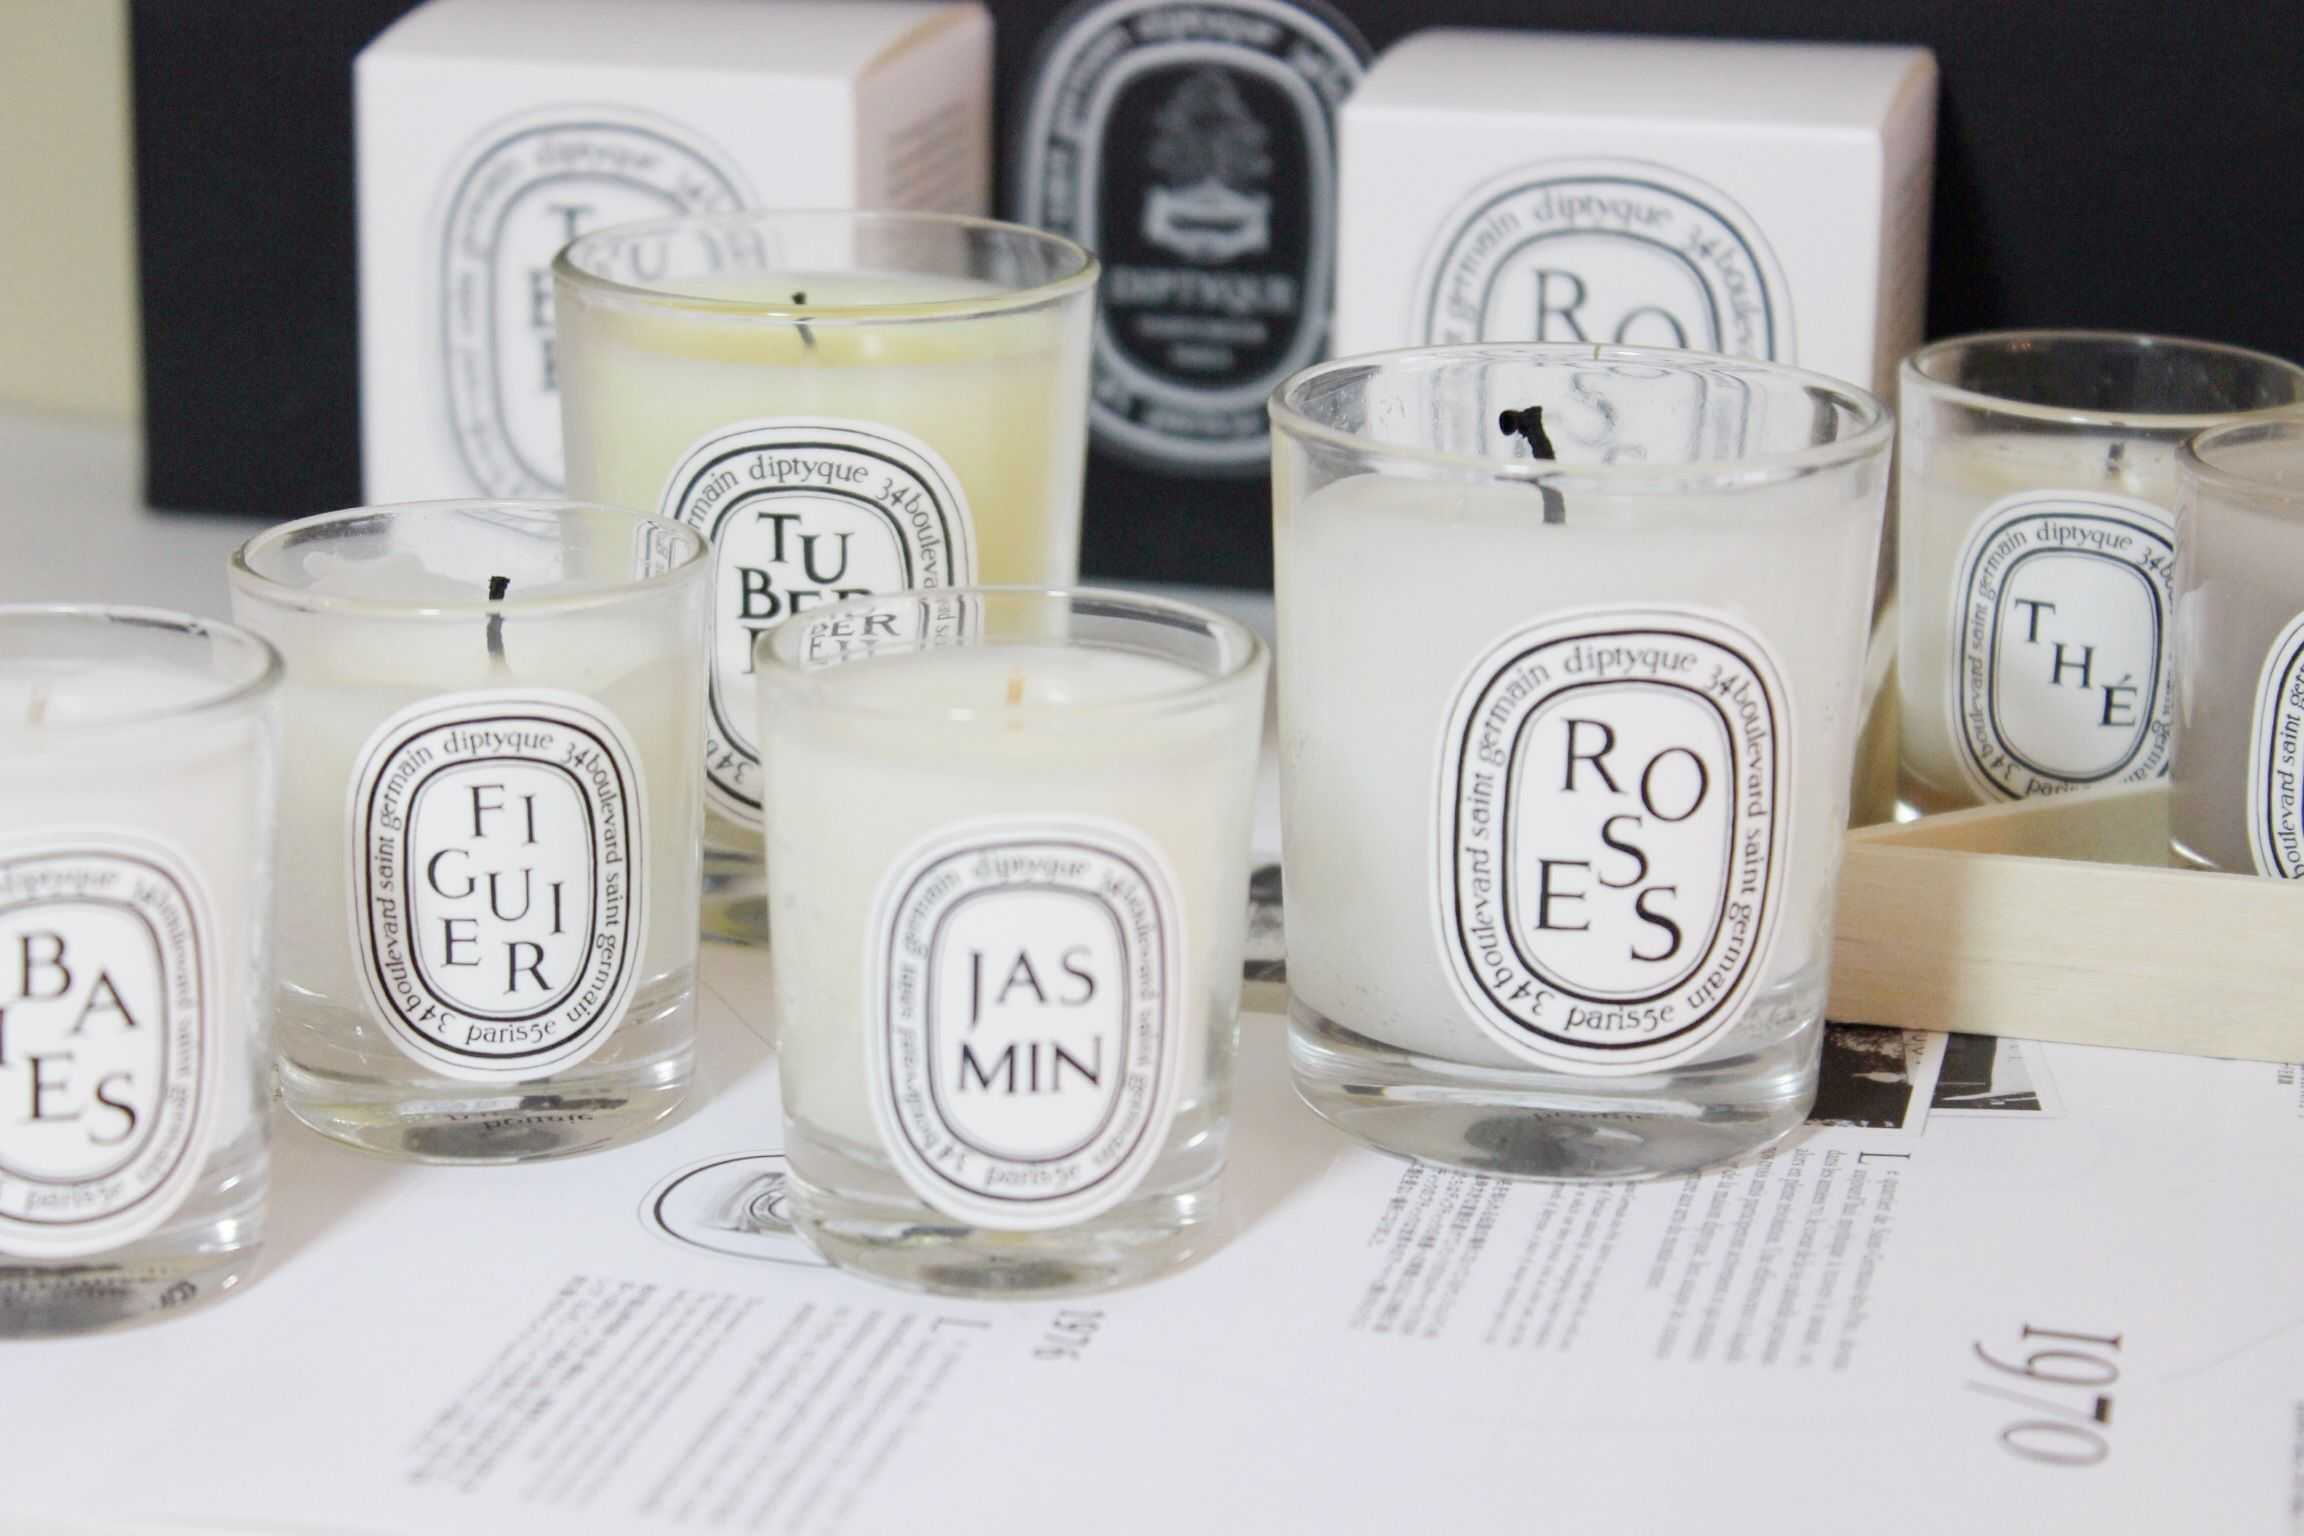 I've been wanting to try TanaMontana20's Diptyque Candle DIY ever ...